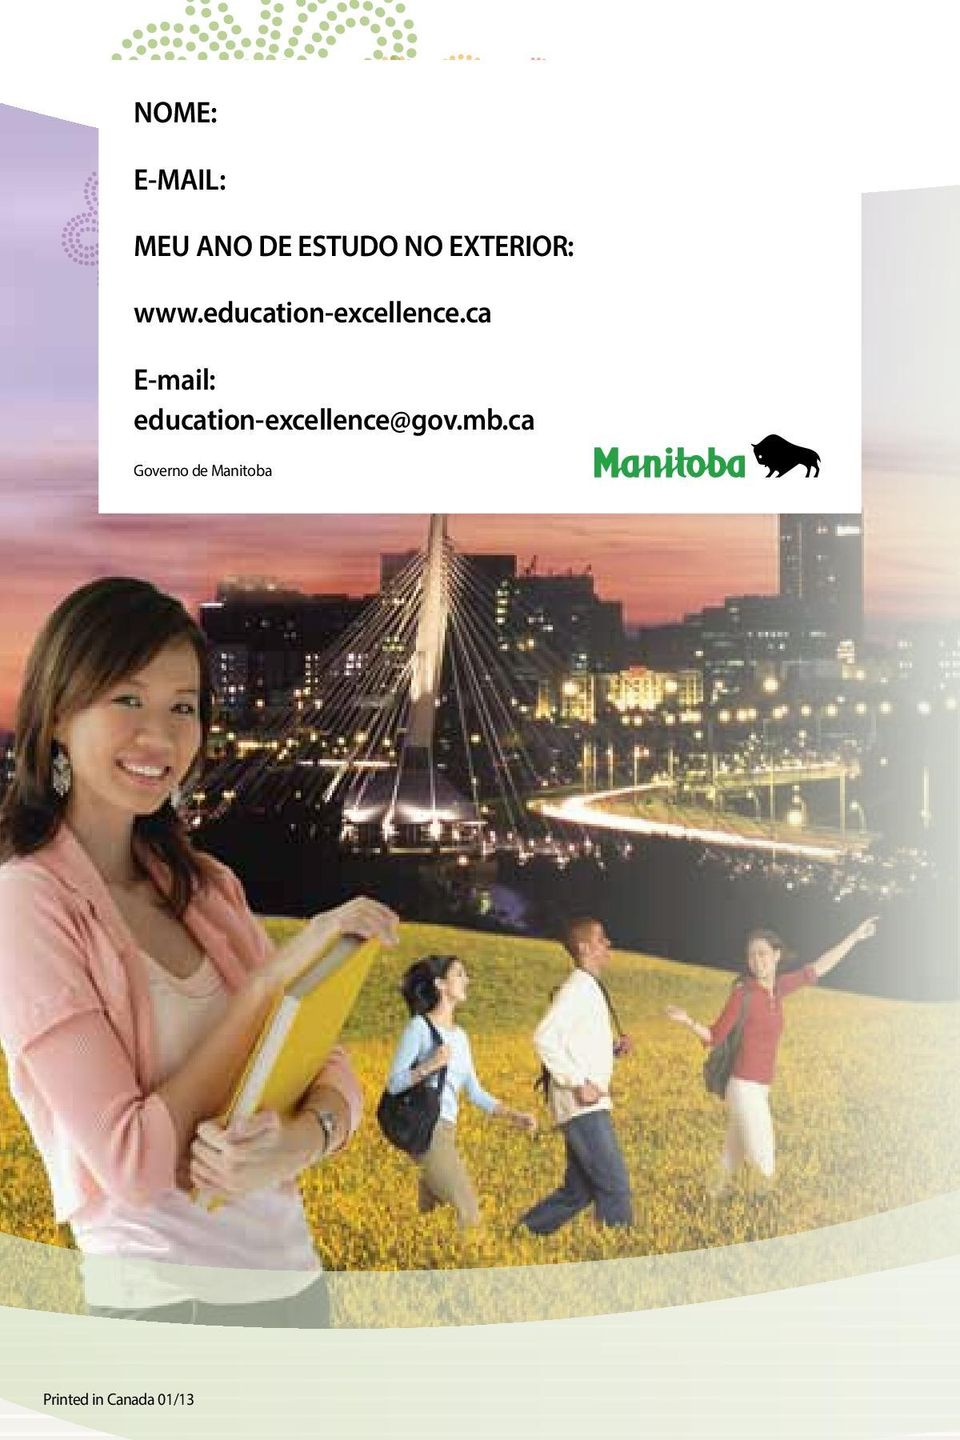 ca E-mail: education-excellence@gov.mb.